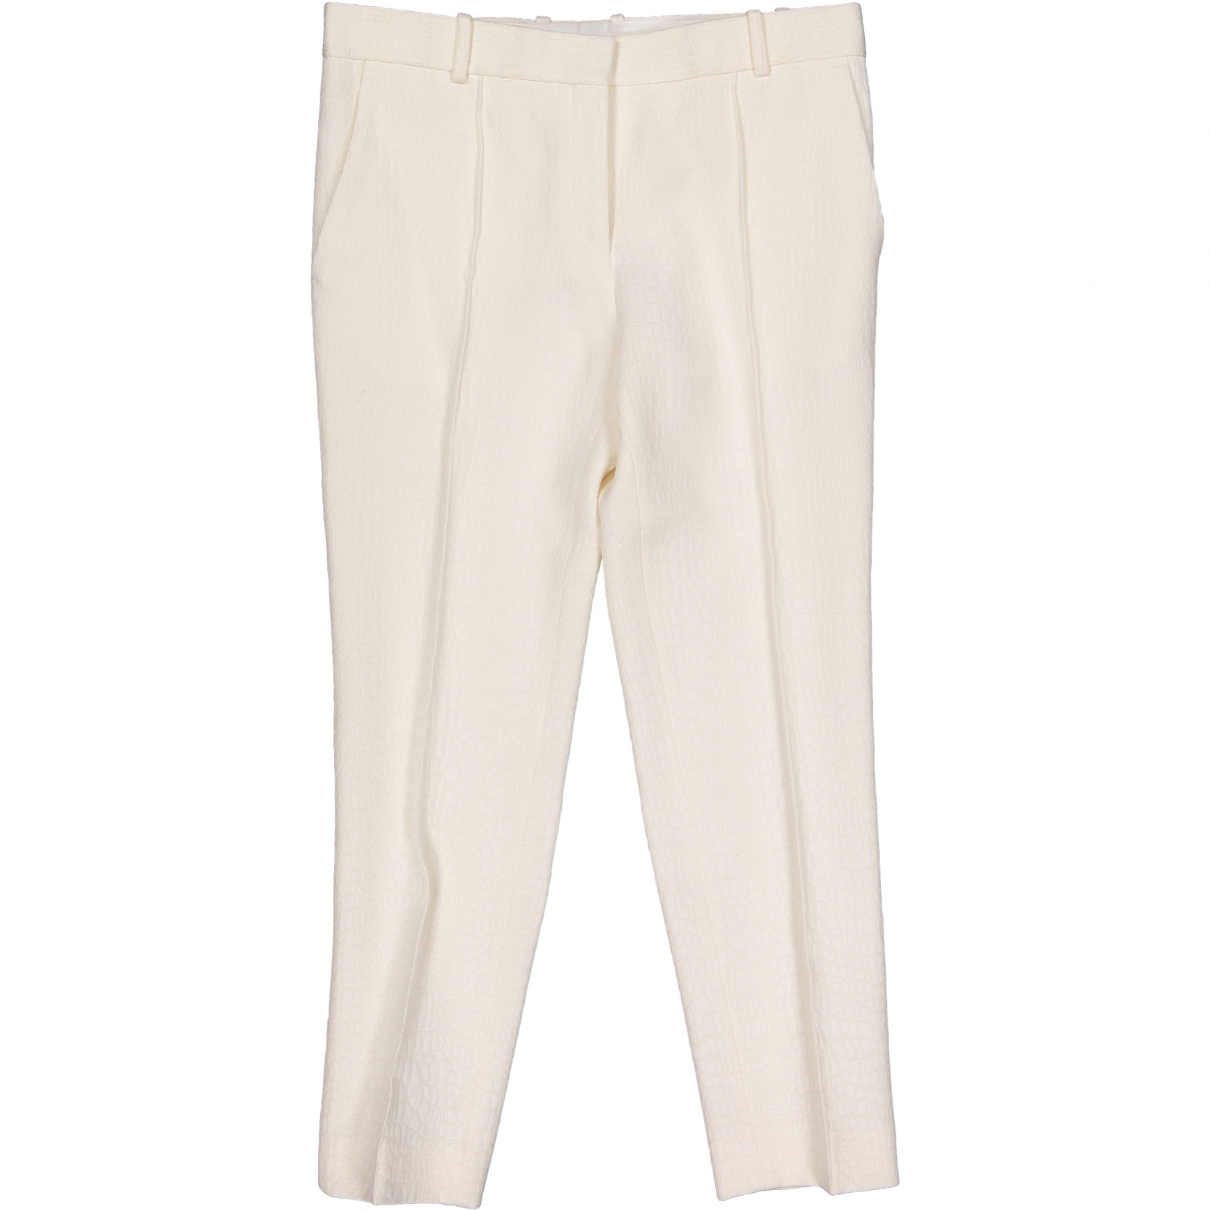 Celine \N Ecru Cotton Trousers for Women 38 FR